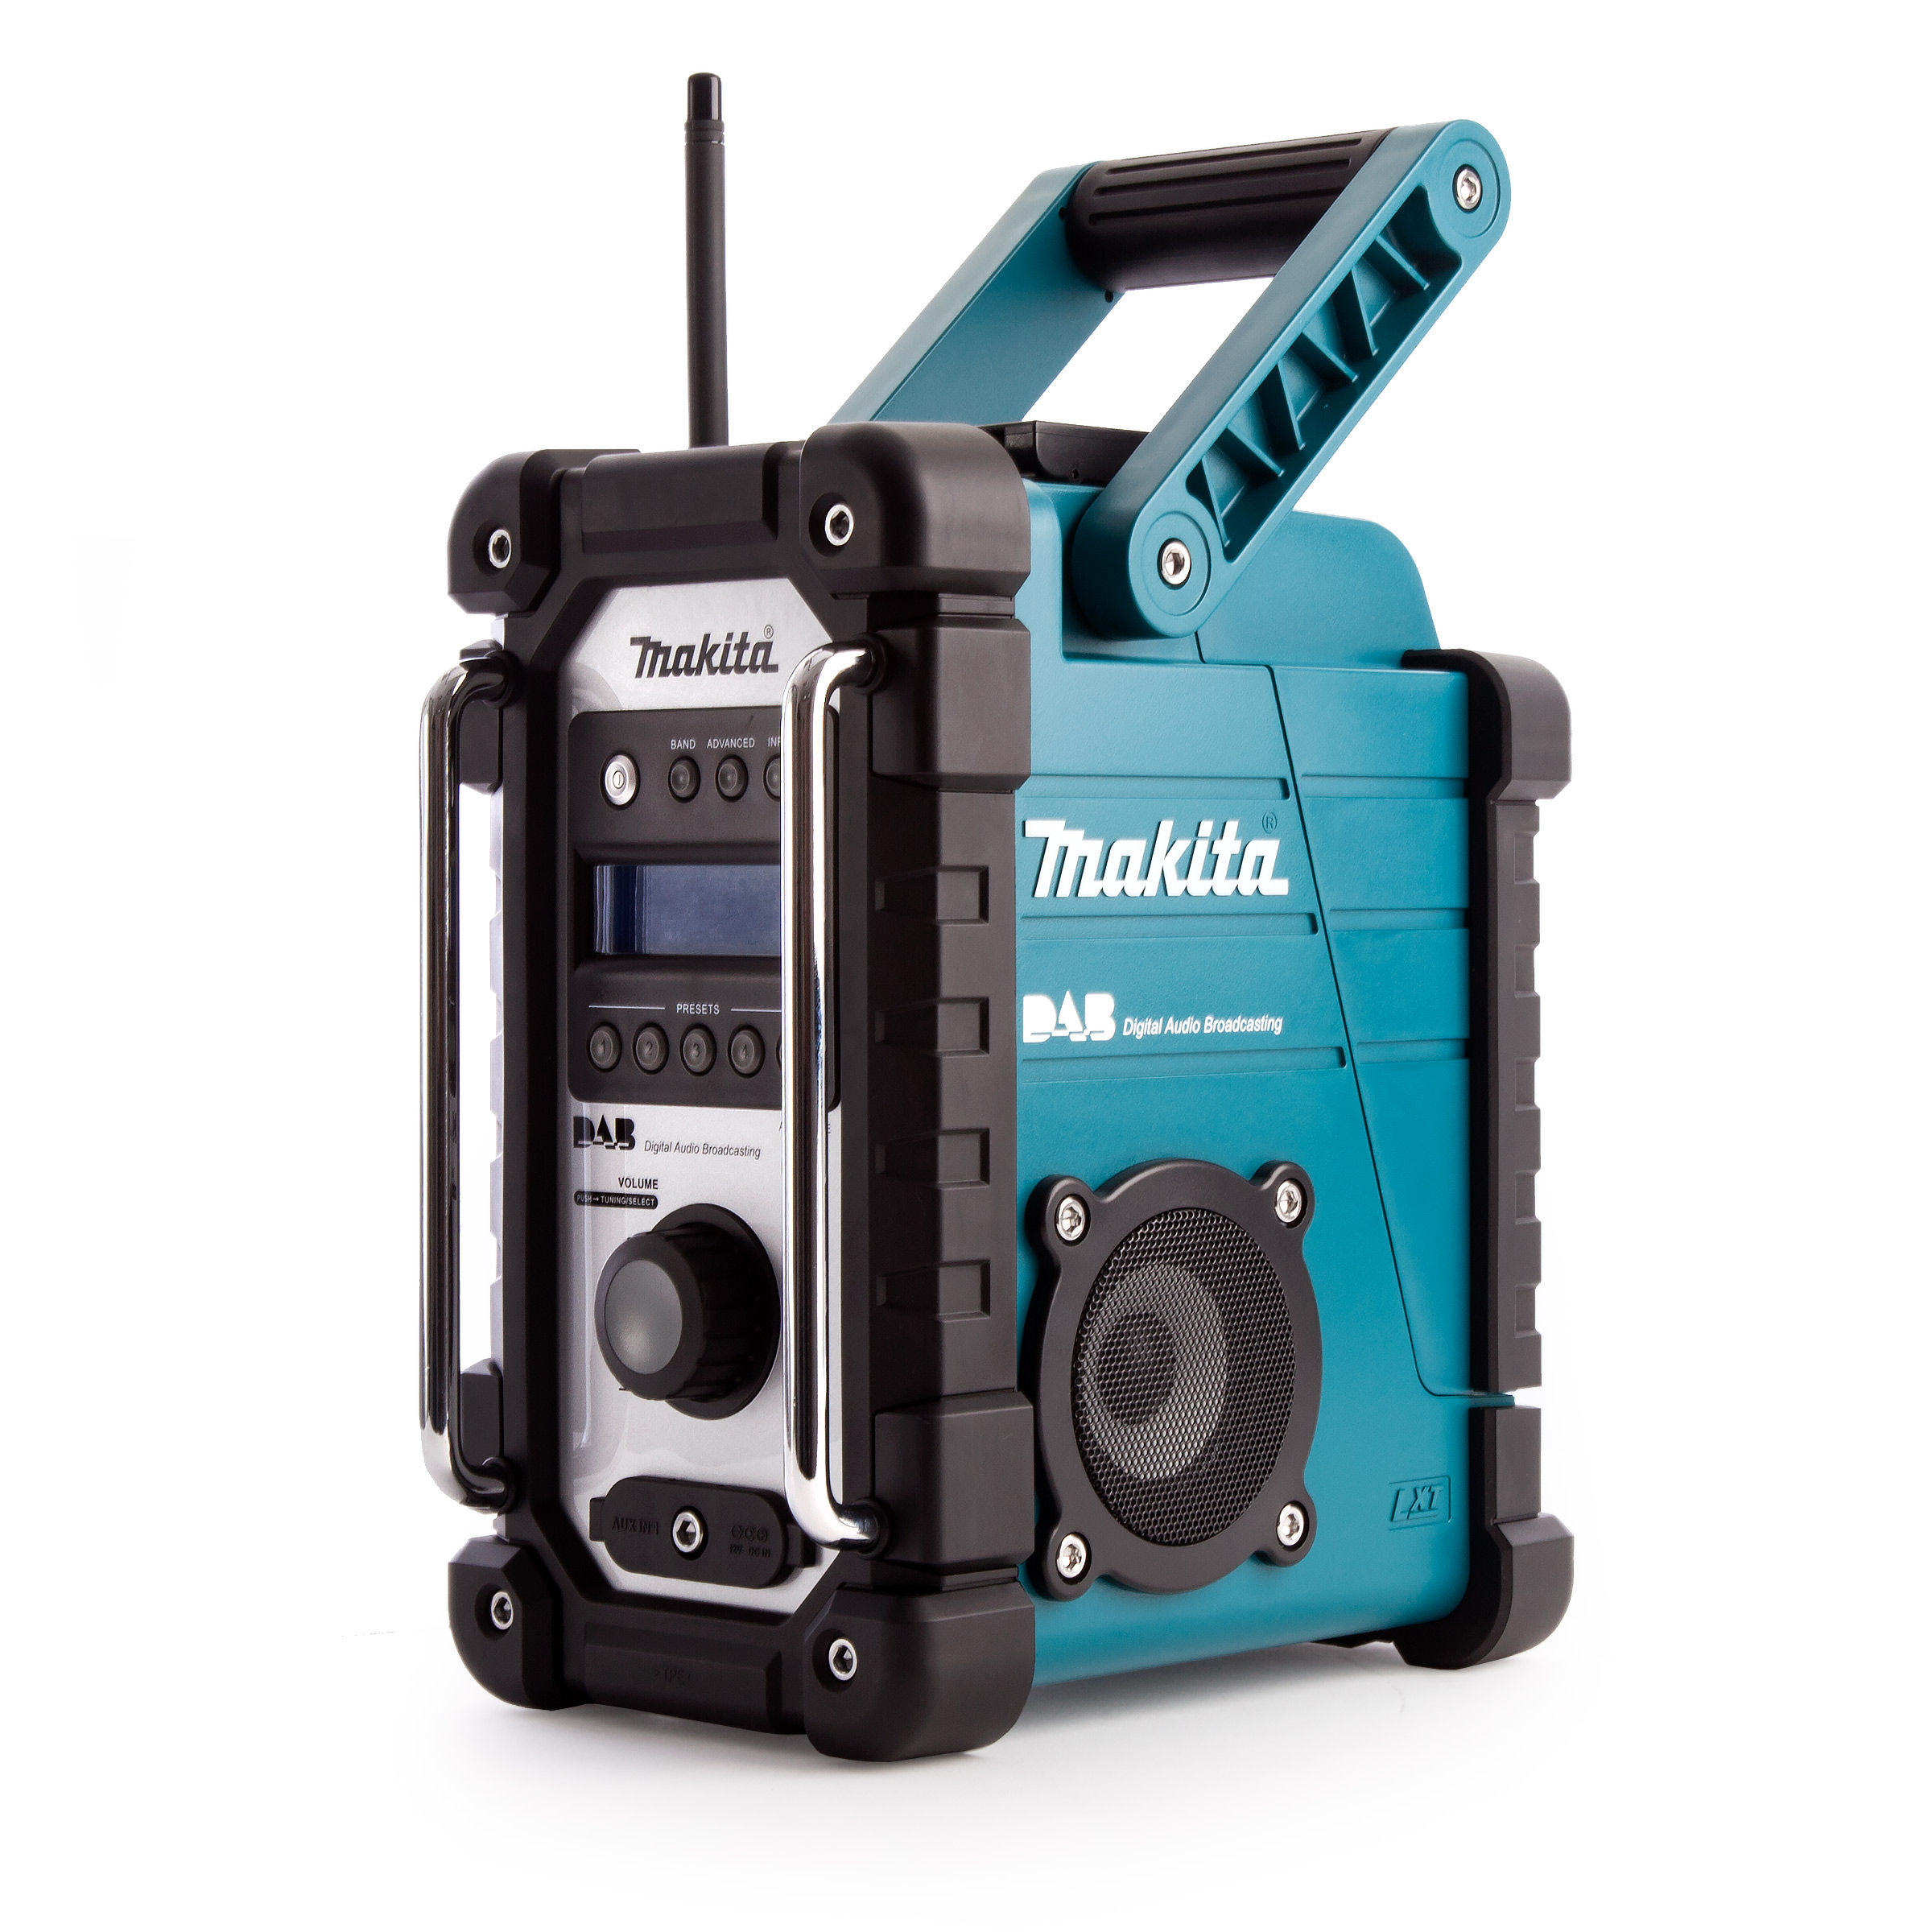 Toolstop Makita DMR104 Job Site Radio Stereo with DAB and FM ...